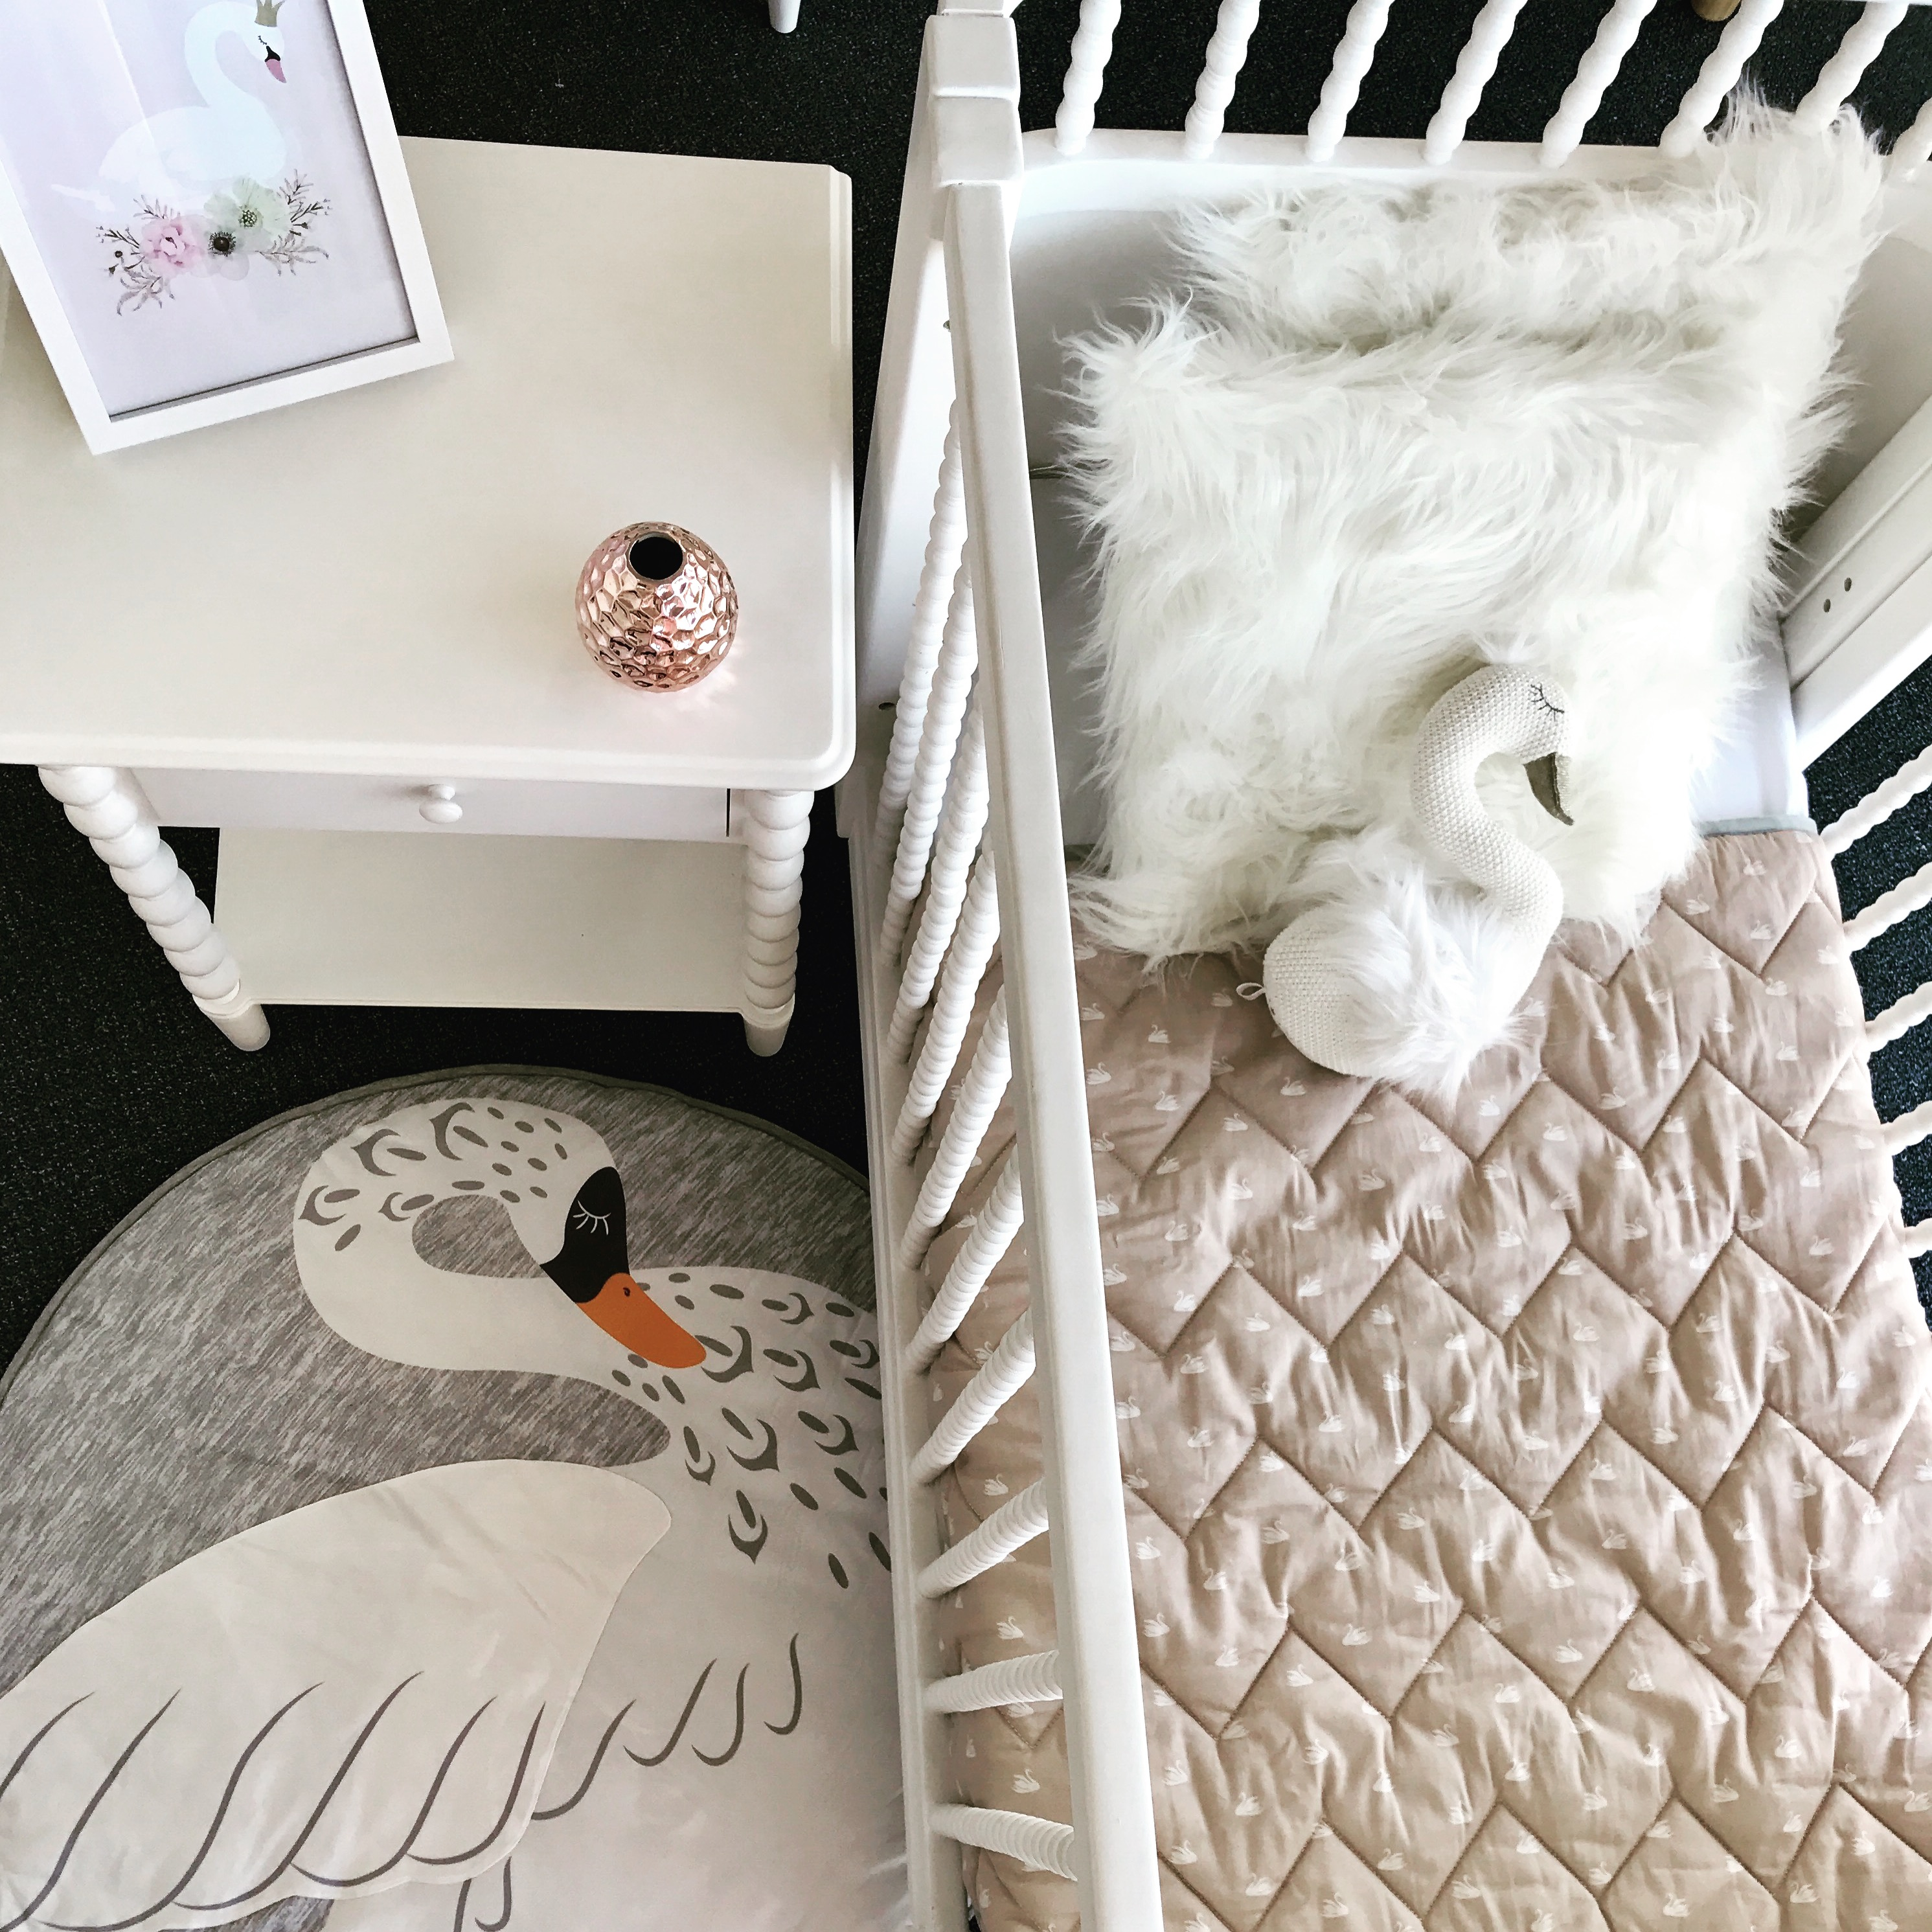 Mister Fly Swan Play Mat Babyroad